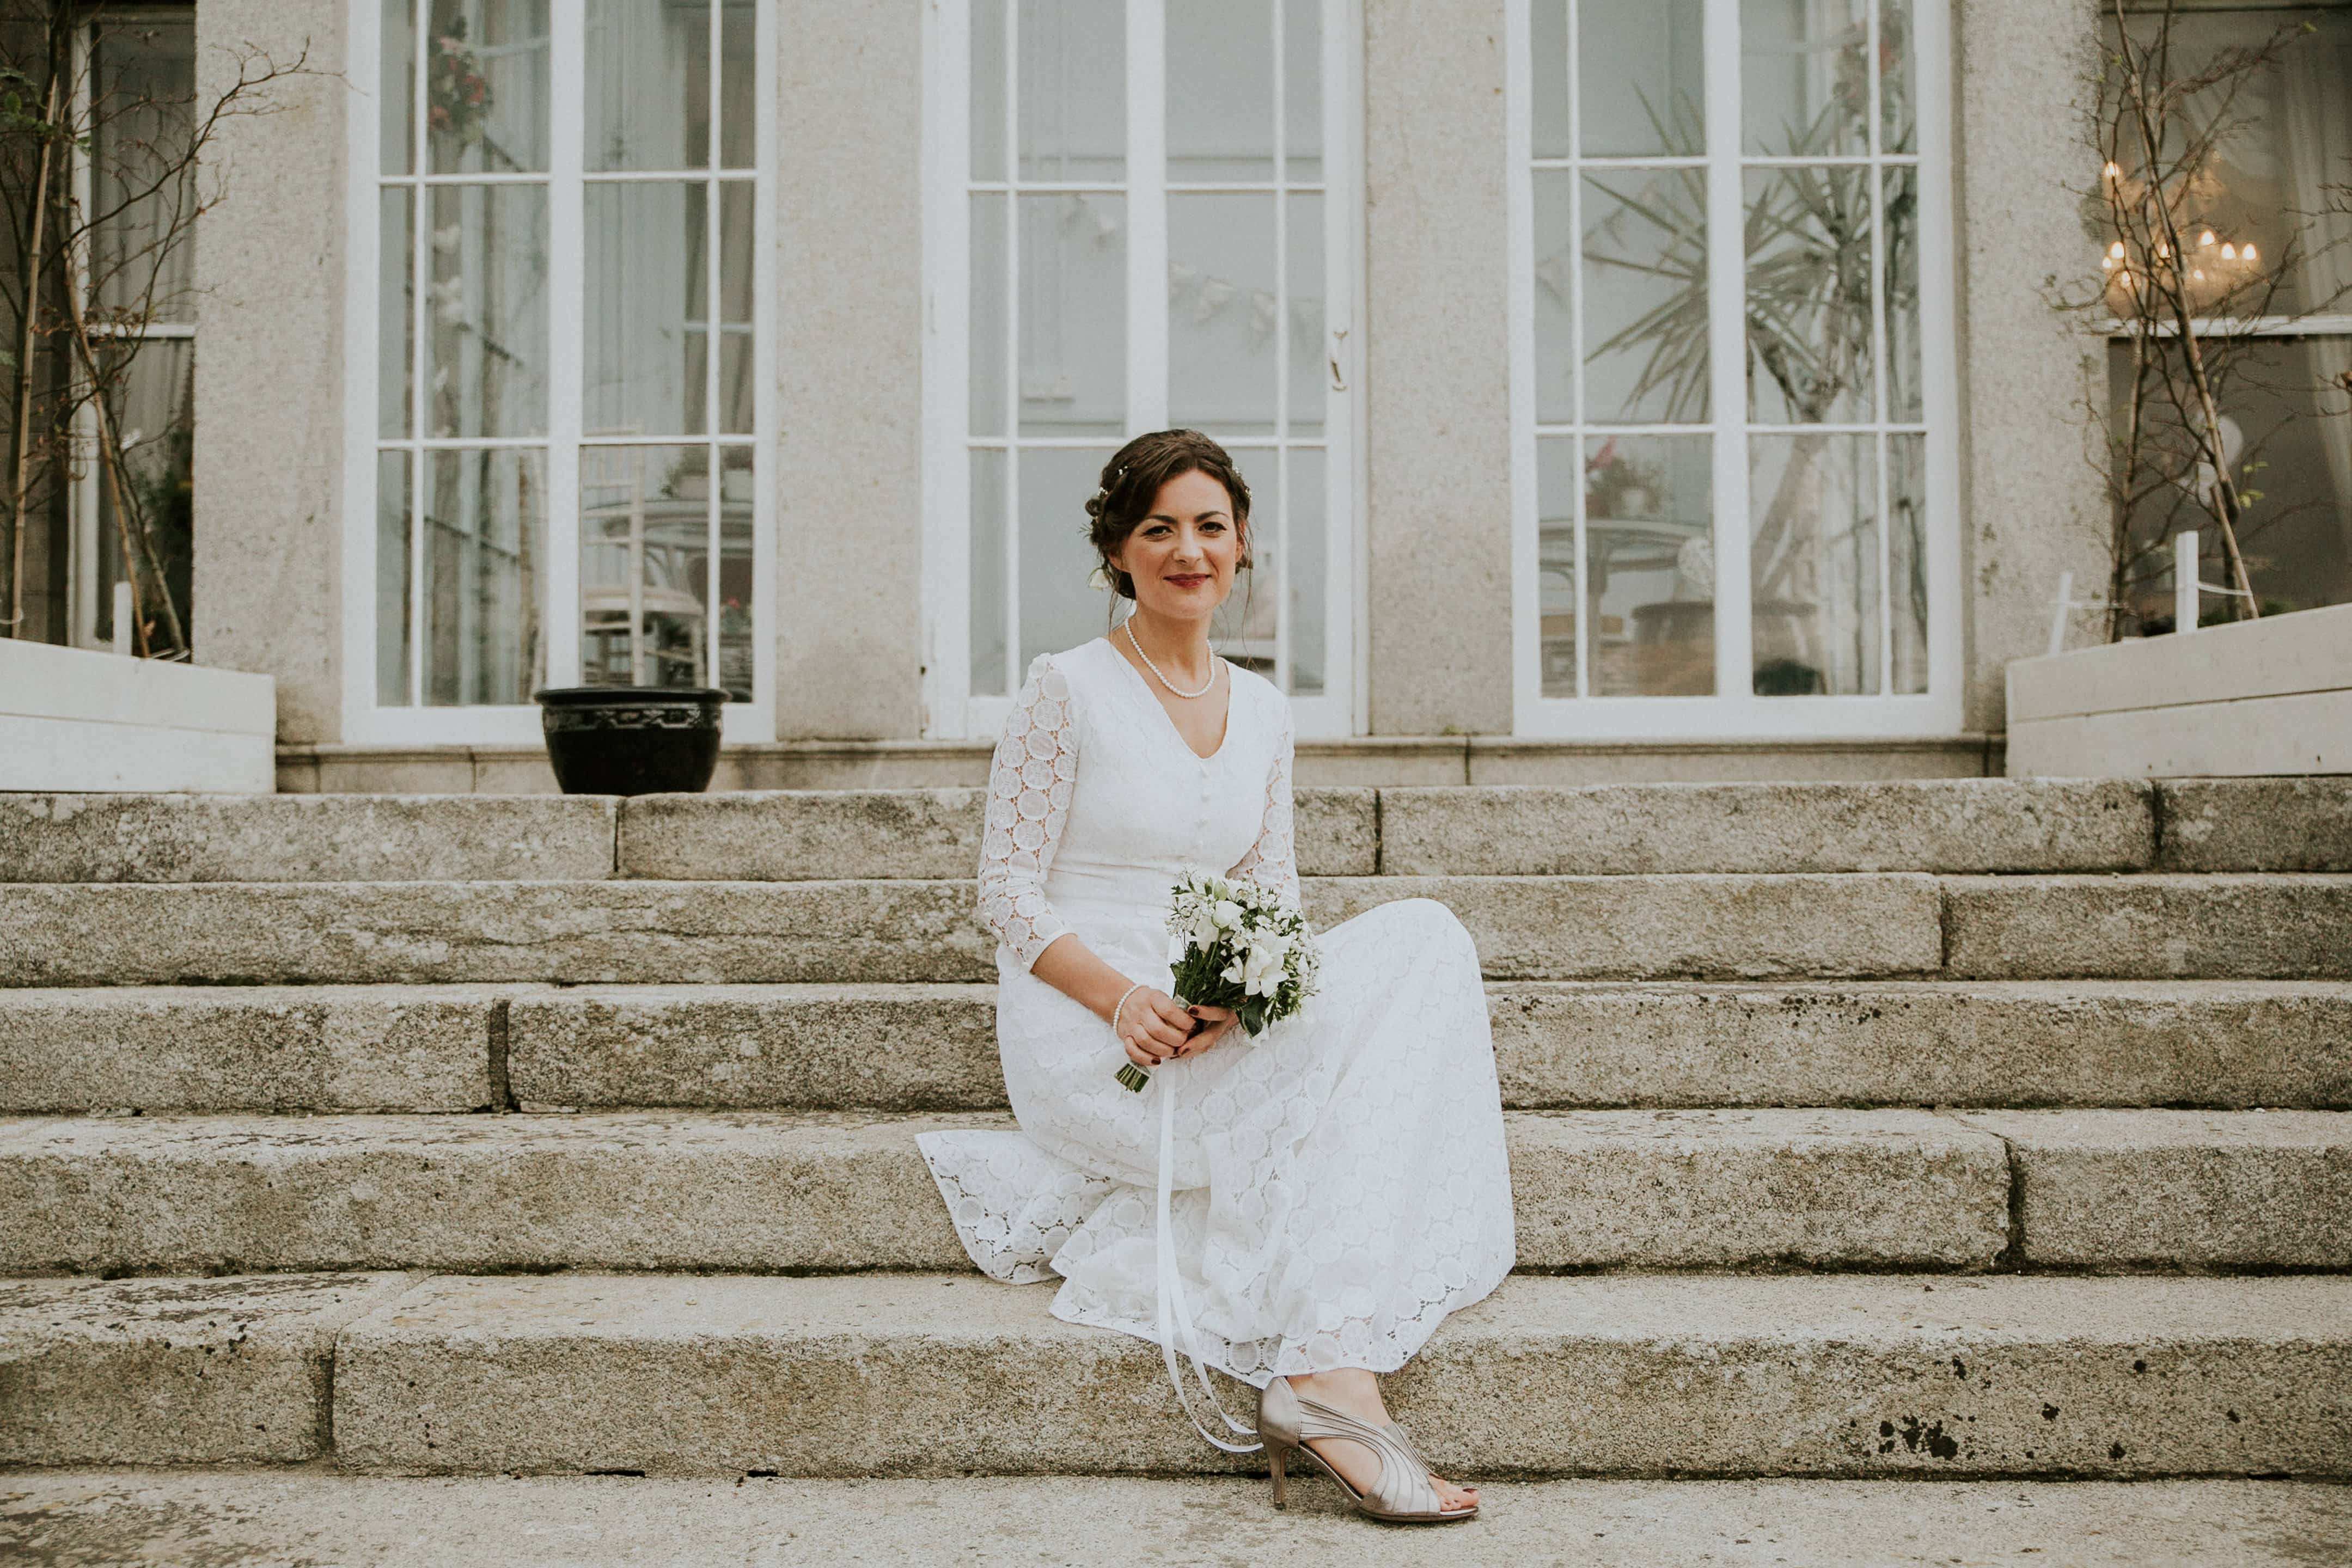 Bride portrait at Horetown House, Wexford